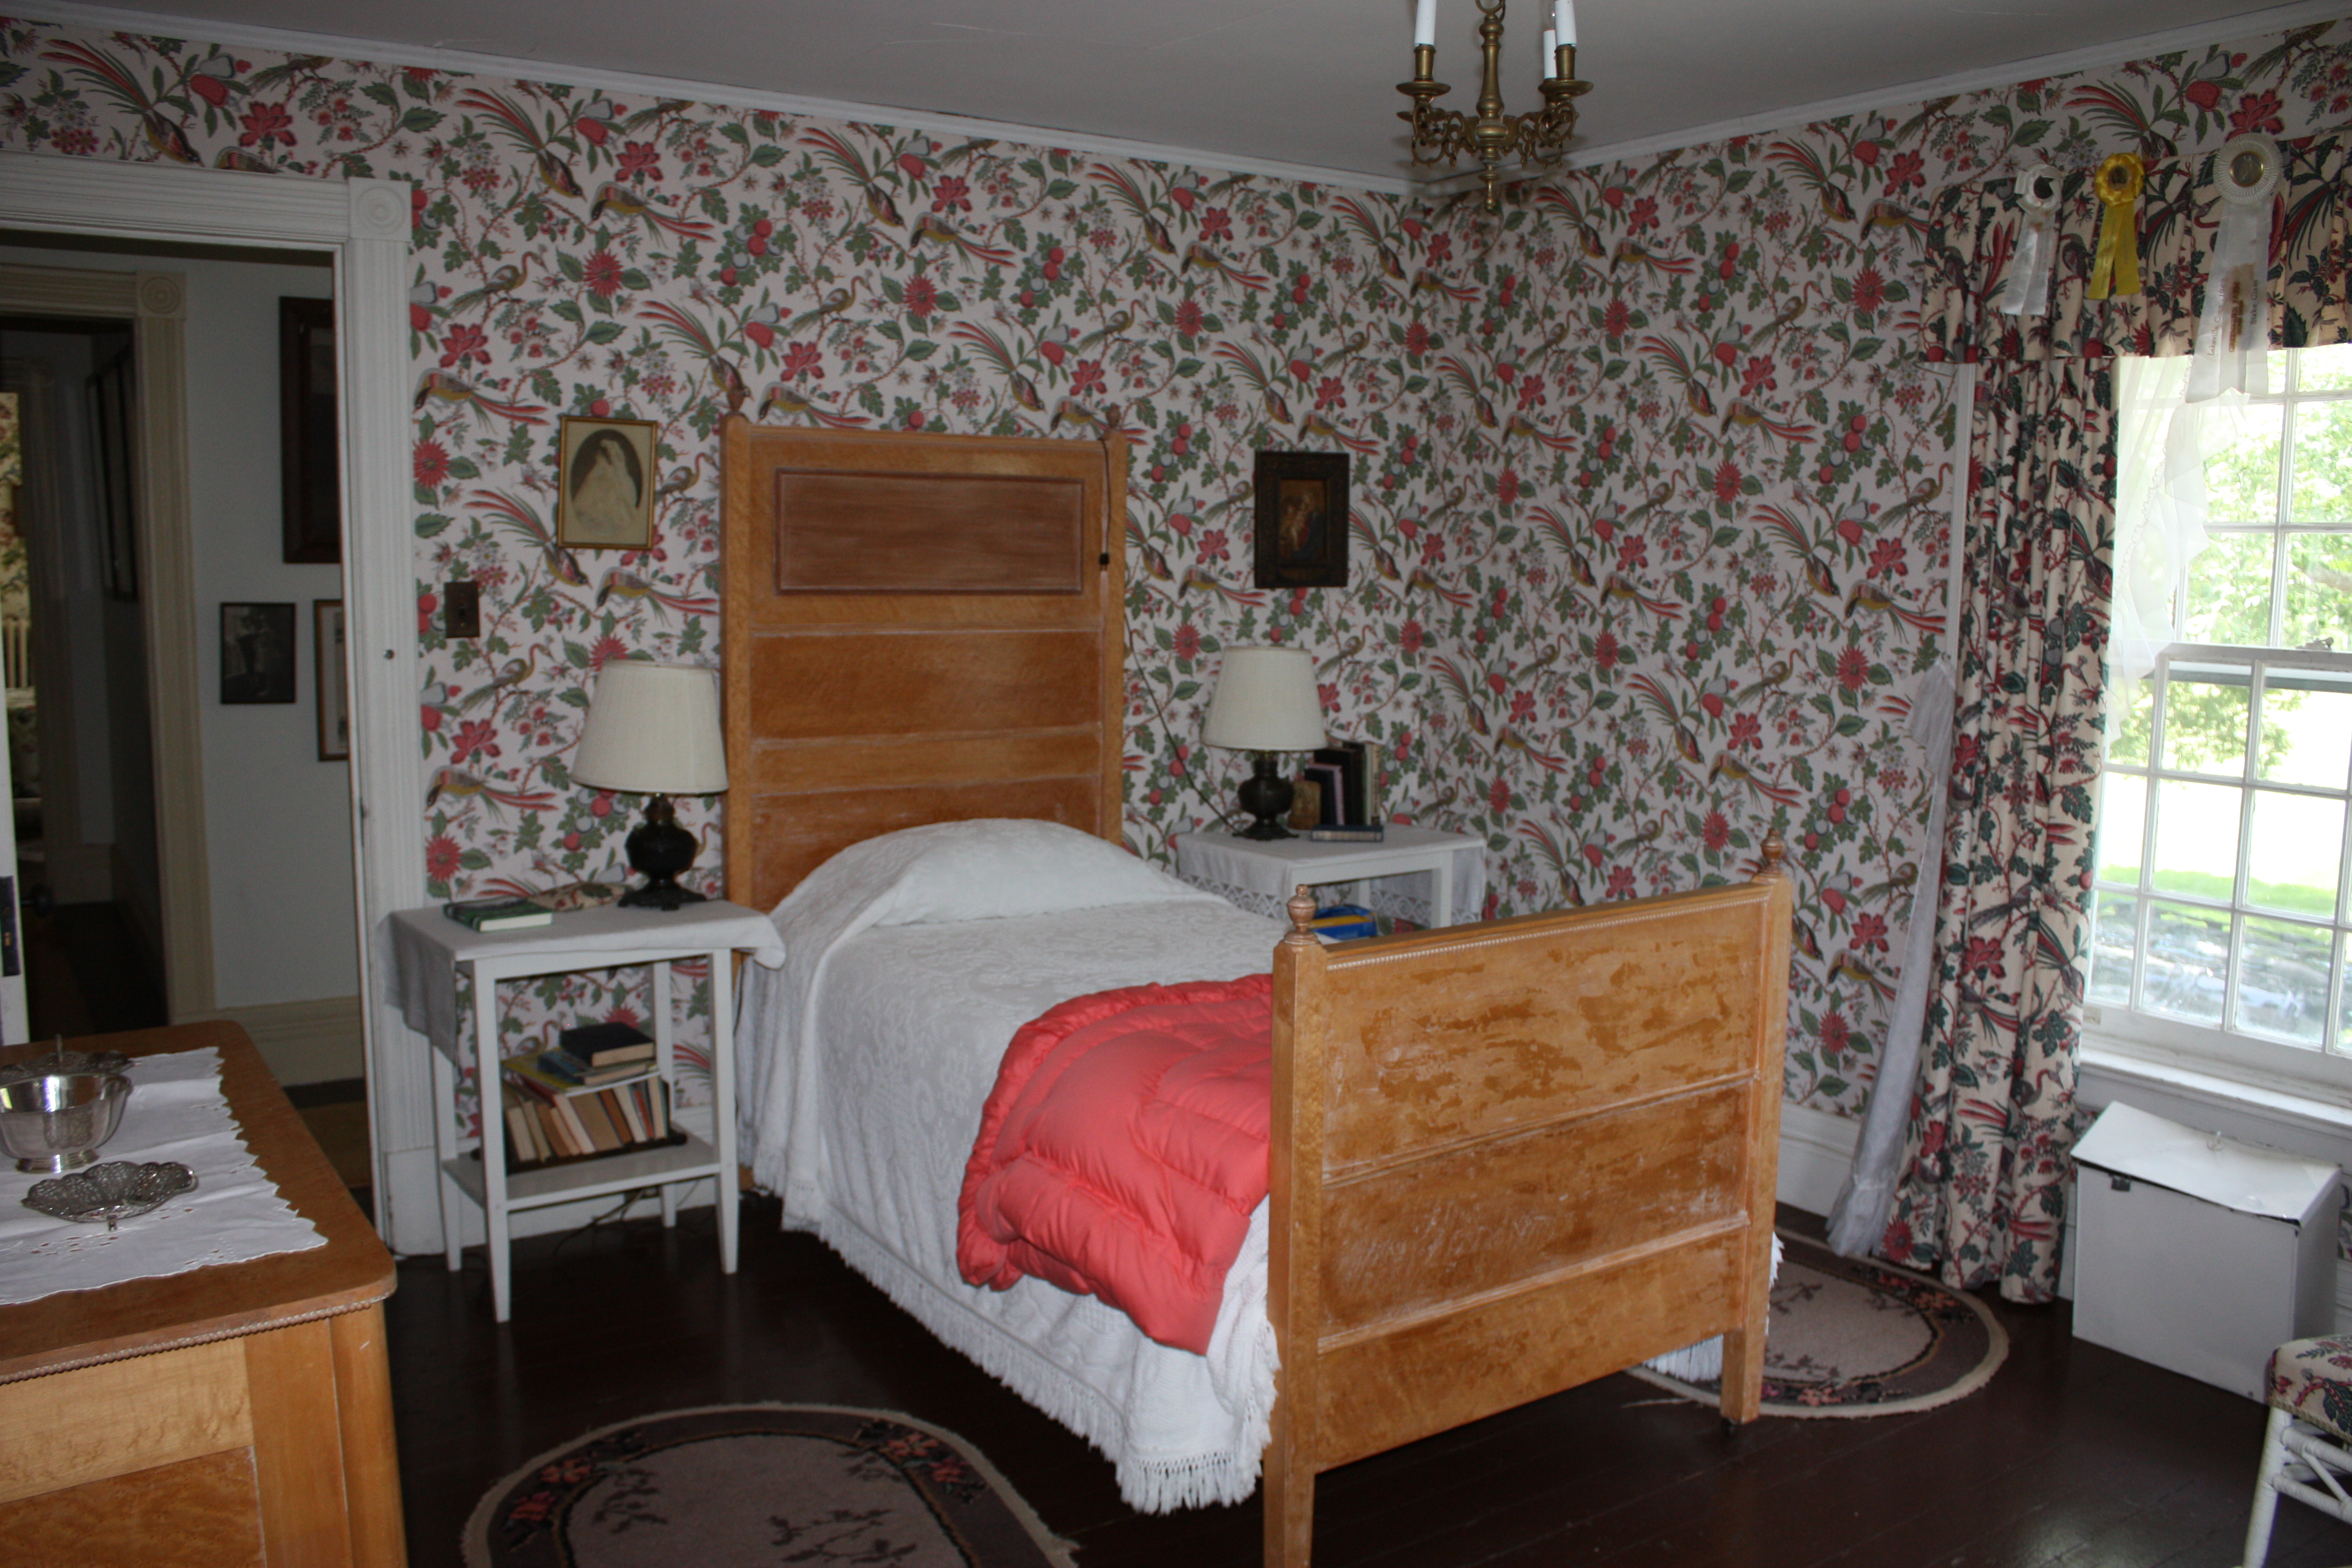 family bedrooms in an 1880s lodge let s face the music rh charlieandjo wordpress com 1980s bathrooms 1980s rooms